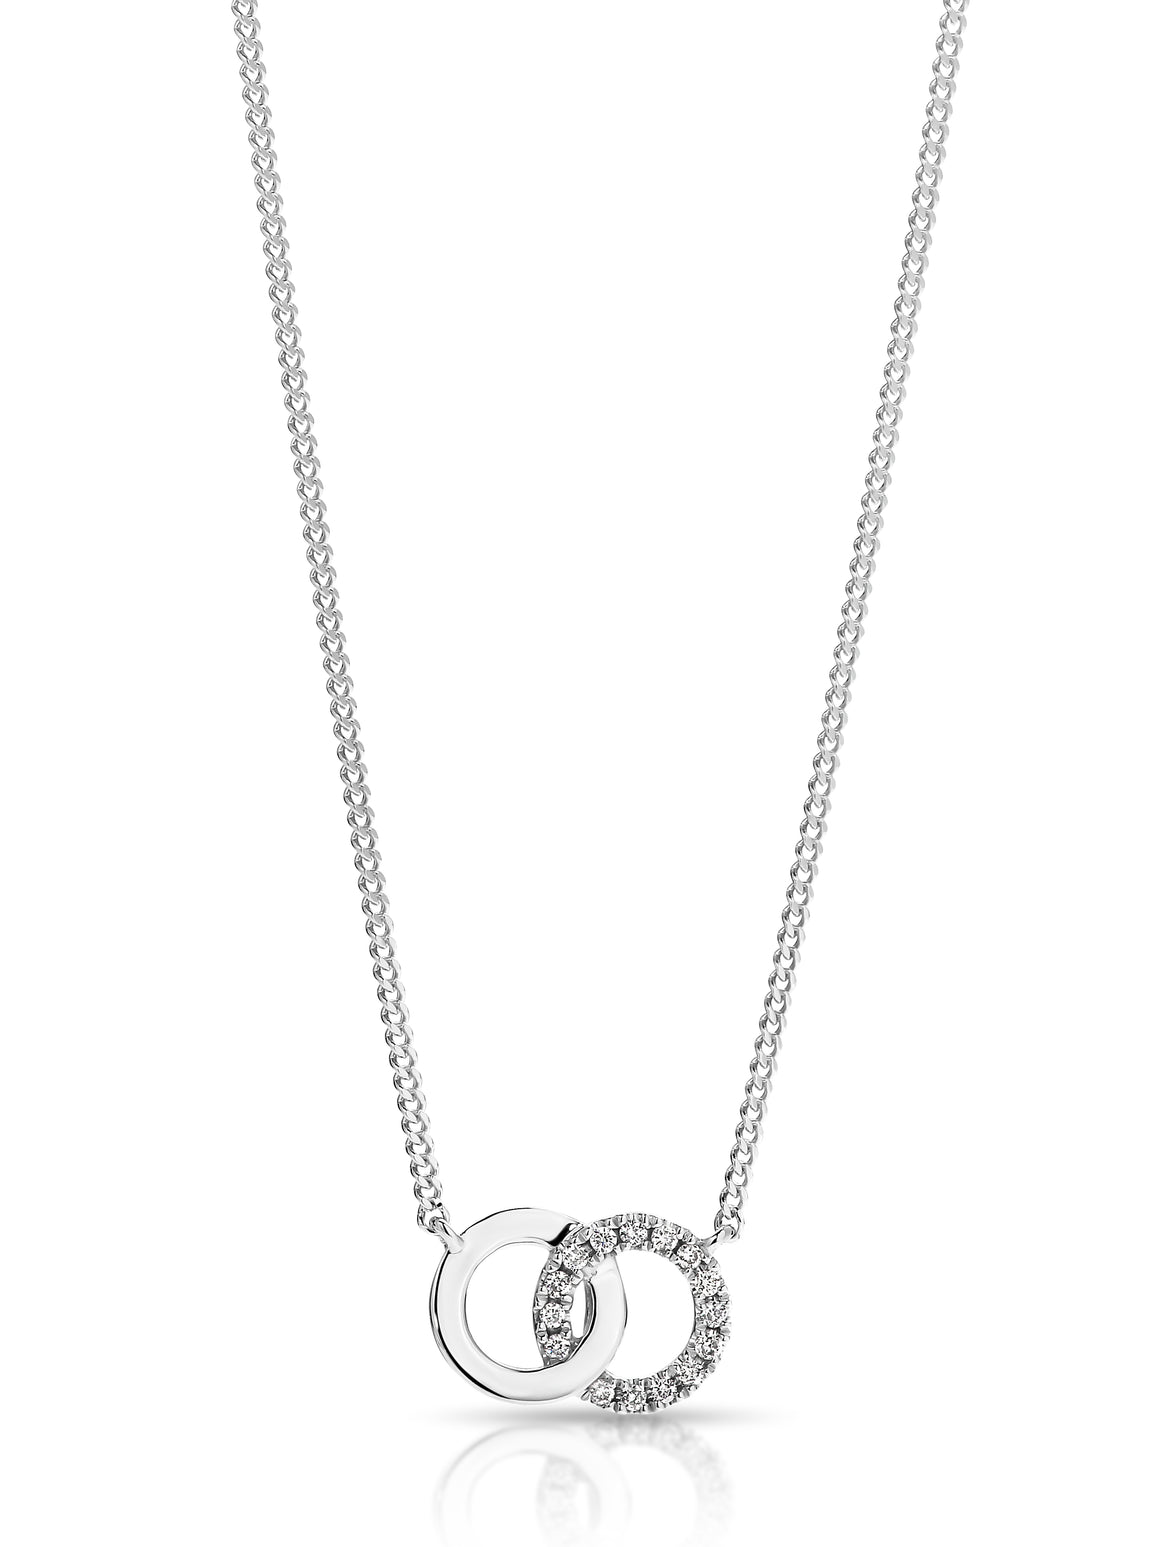 9ct Gold and Diamond 'Infinity Moon' Necklace - Gemma Stone Jewellery